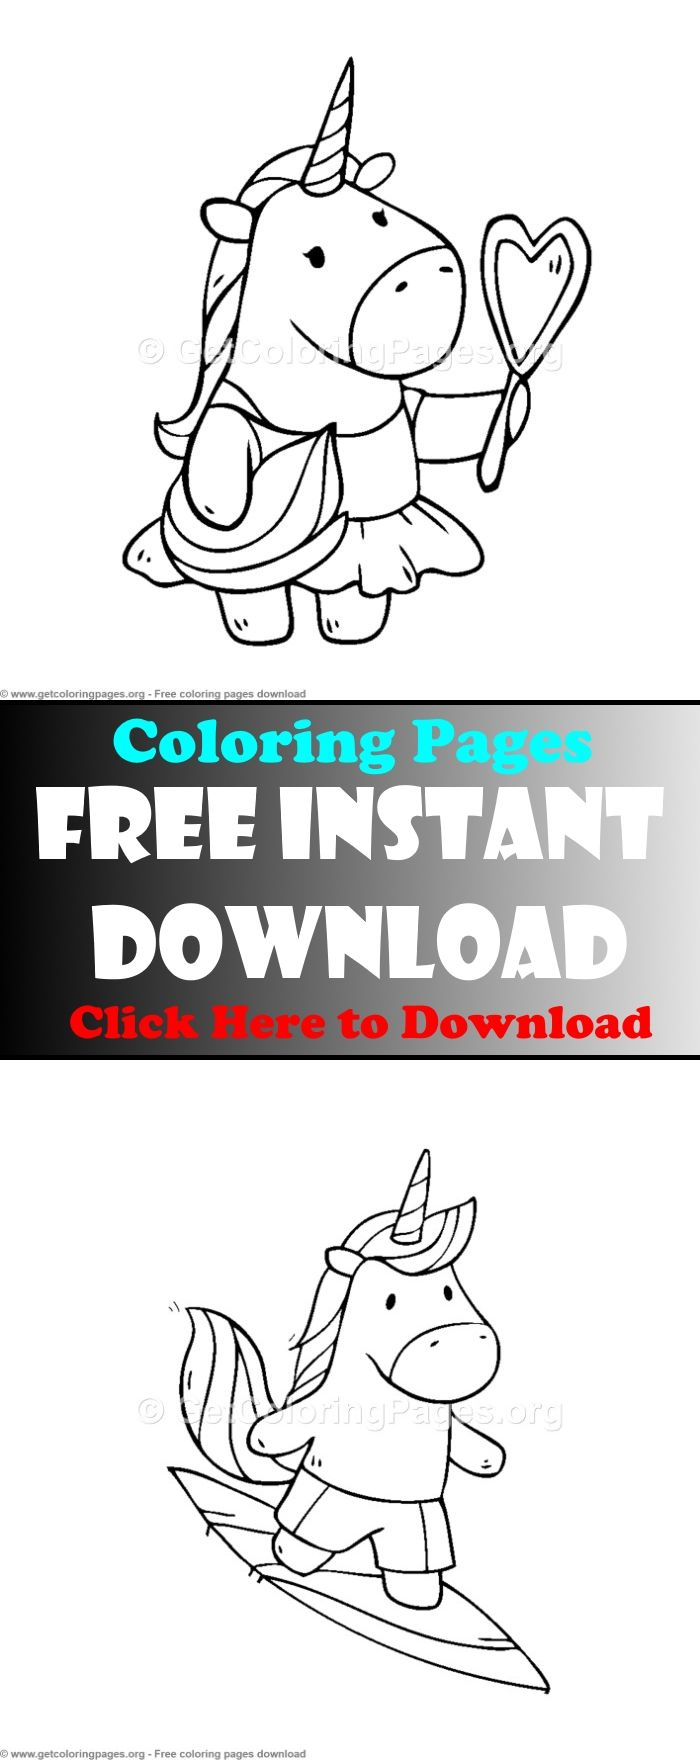 Download Is Free Unicorn Coloring Pages Cute Unicorn Coloring Pages Unicorn Coloring Pages For Ad Birthday Coloring Pages Unicorn Coloring Pages Coloring Pages